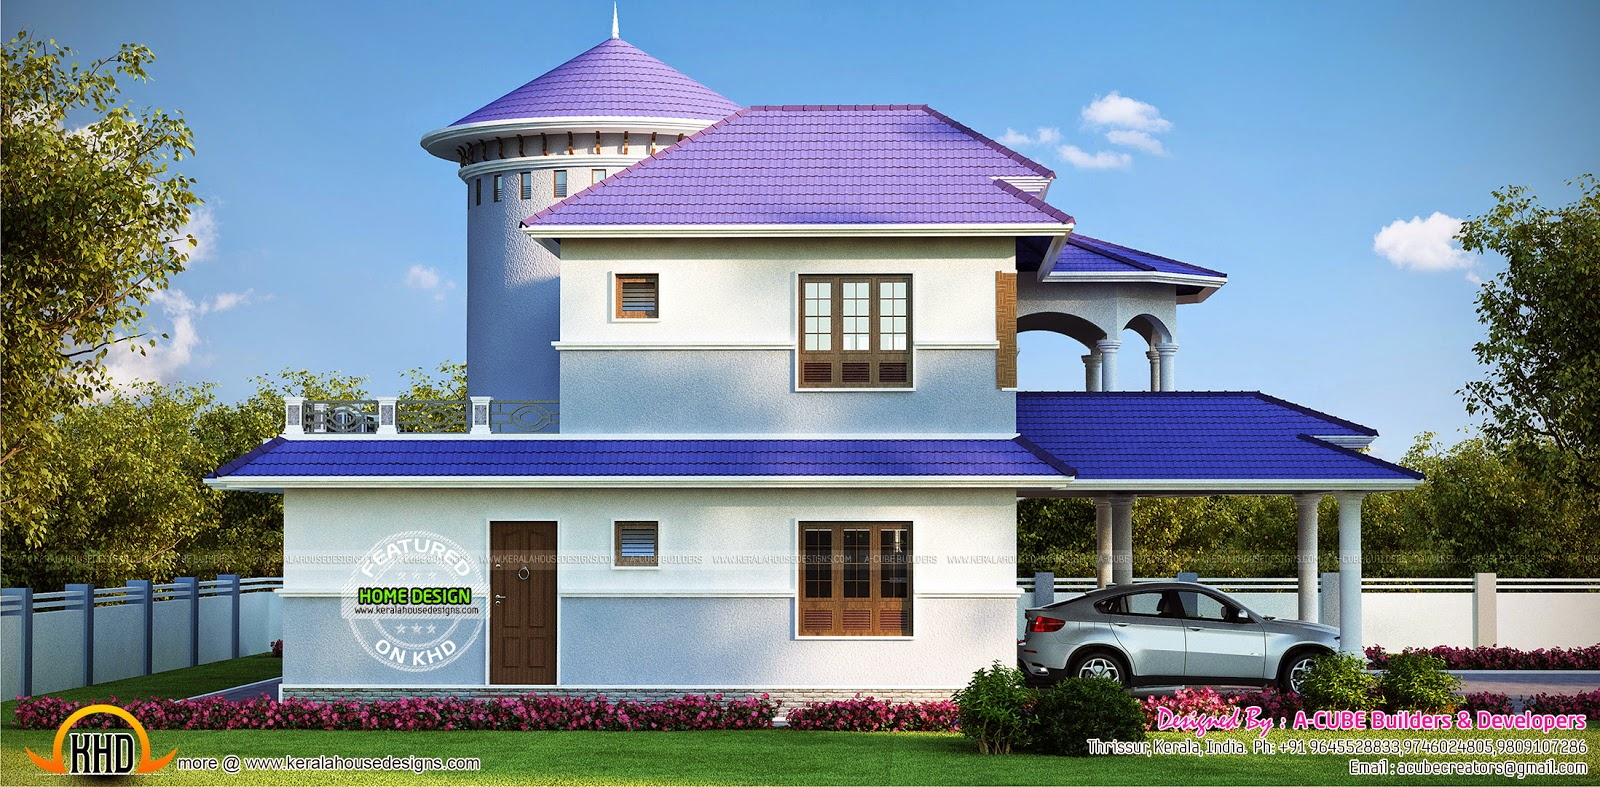 Luxury 5 bedroom house exterior kerala home design and for 5 bedroom luxury house plans